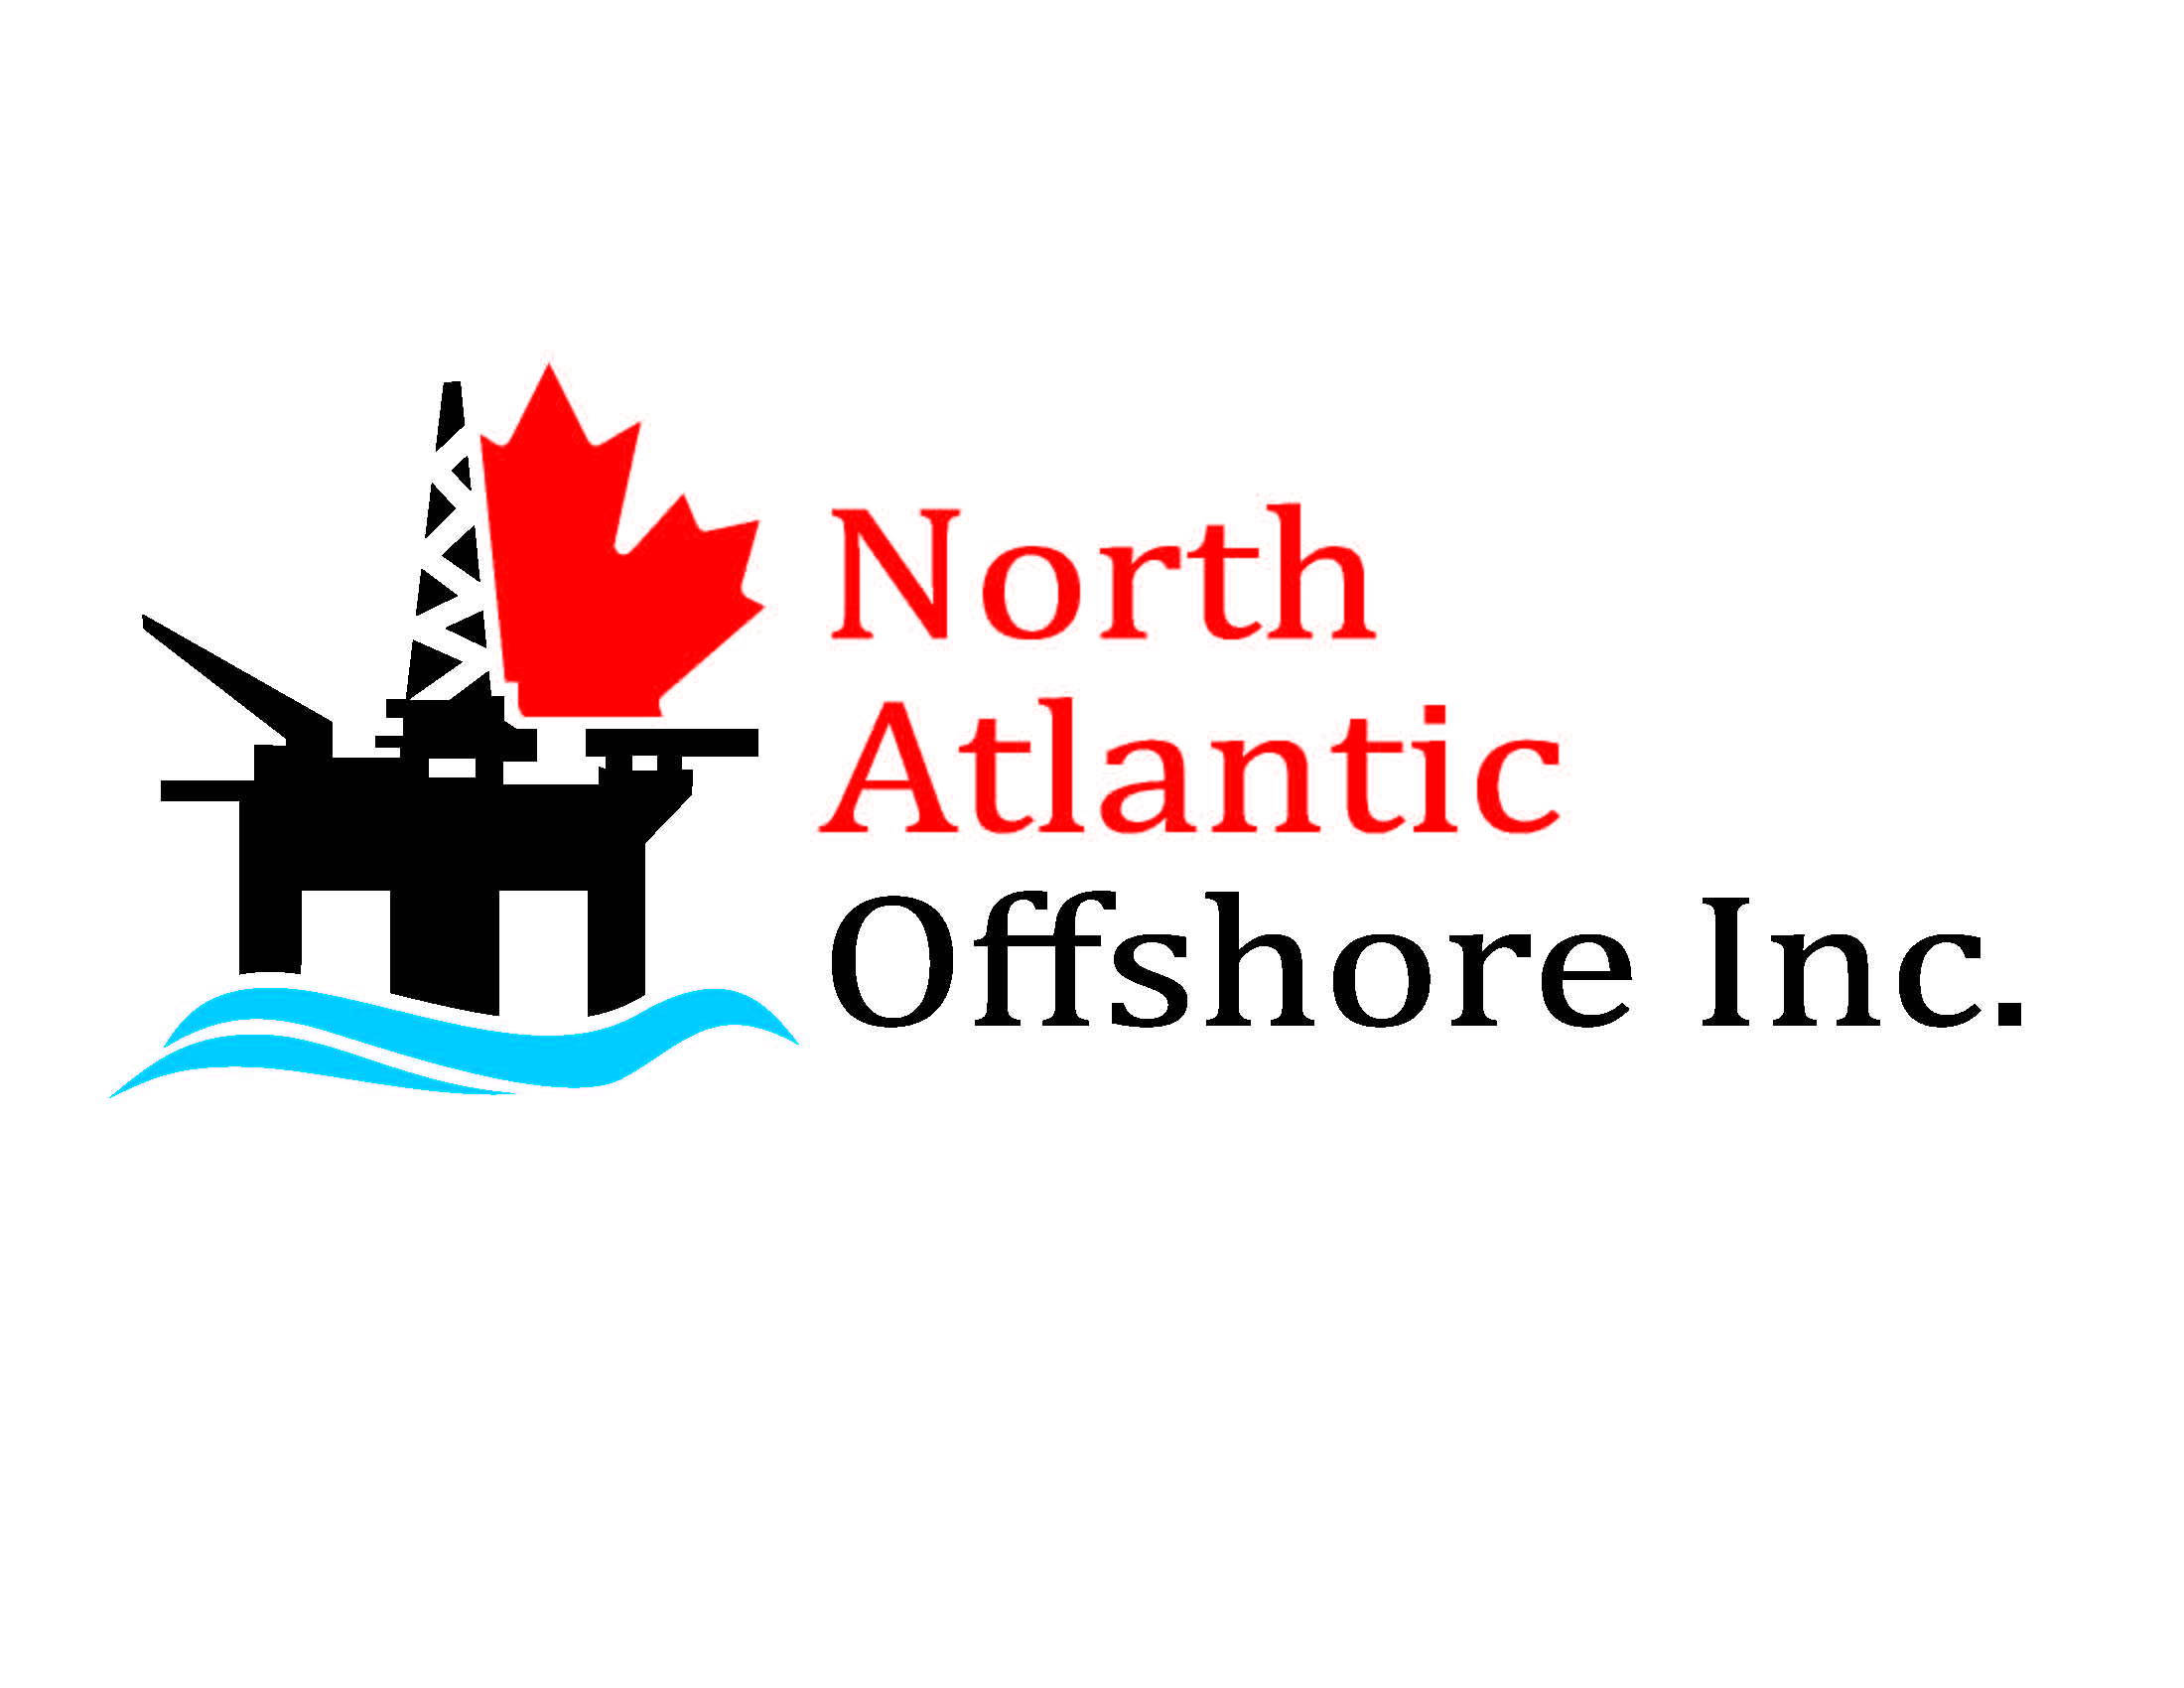 North Atlantic Offshore Inc. logo